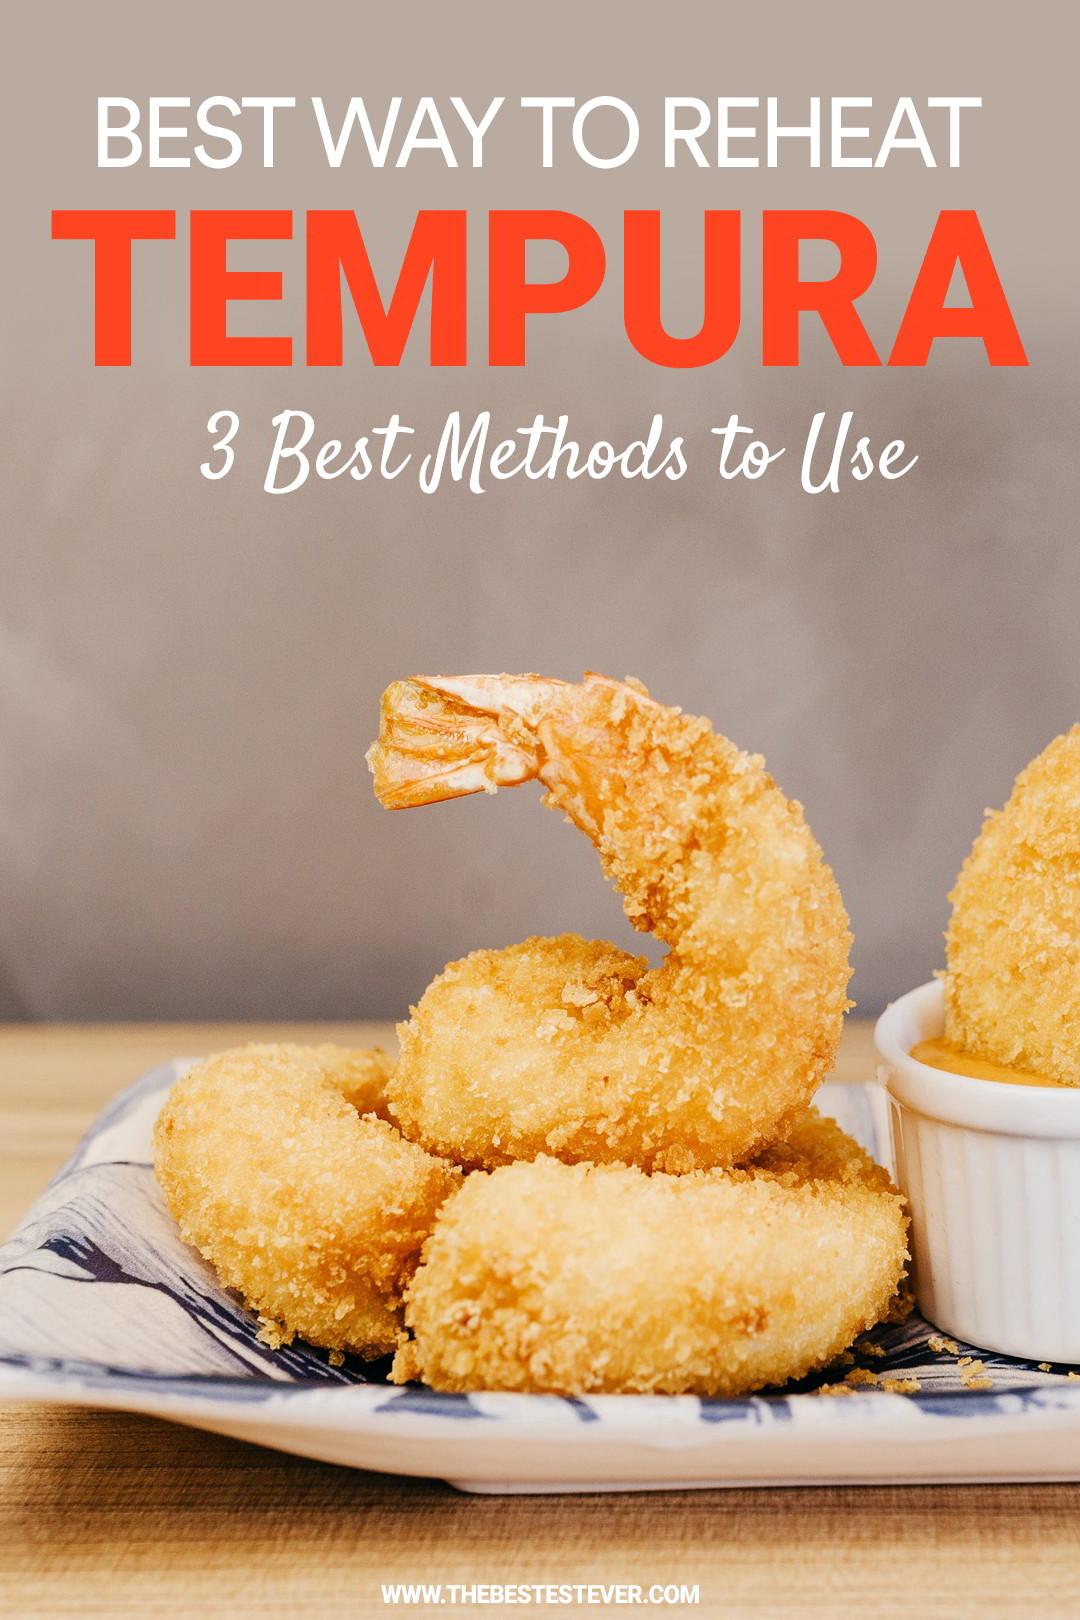 How to Reheat Tempura: 3 Best Methods to Use